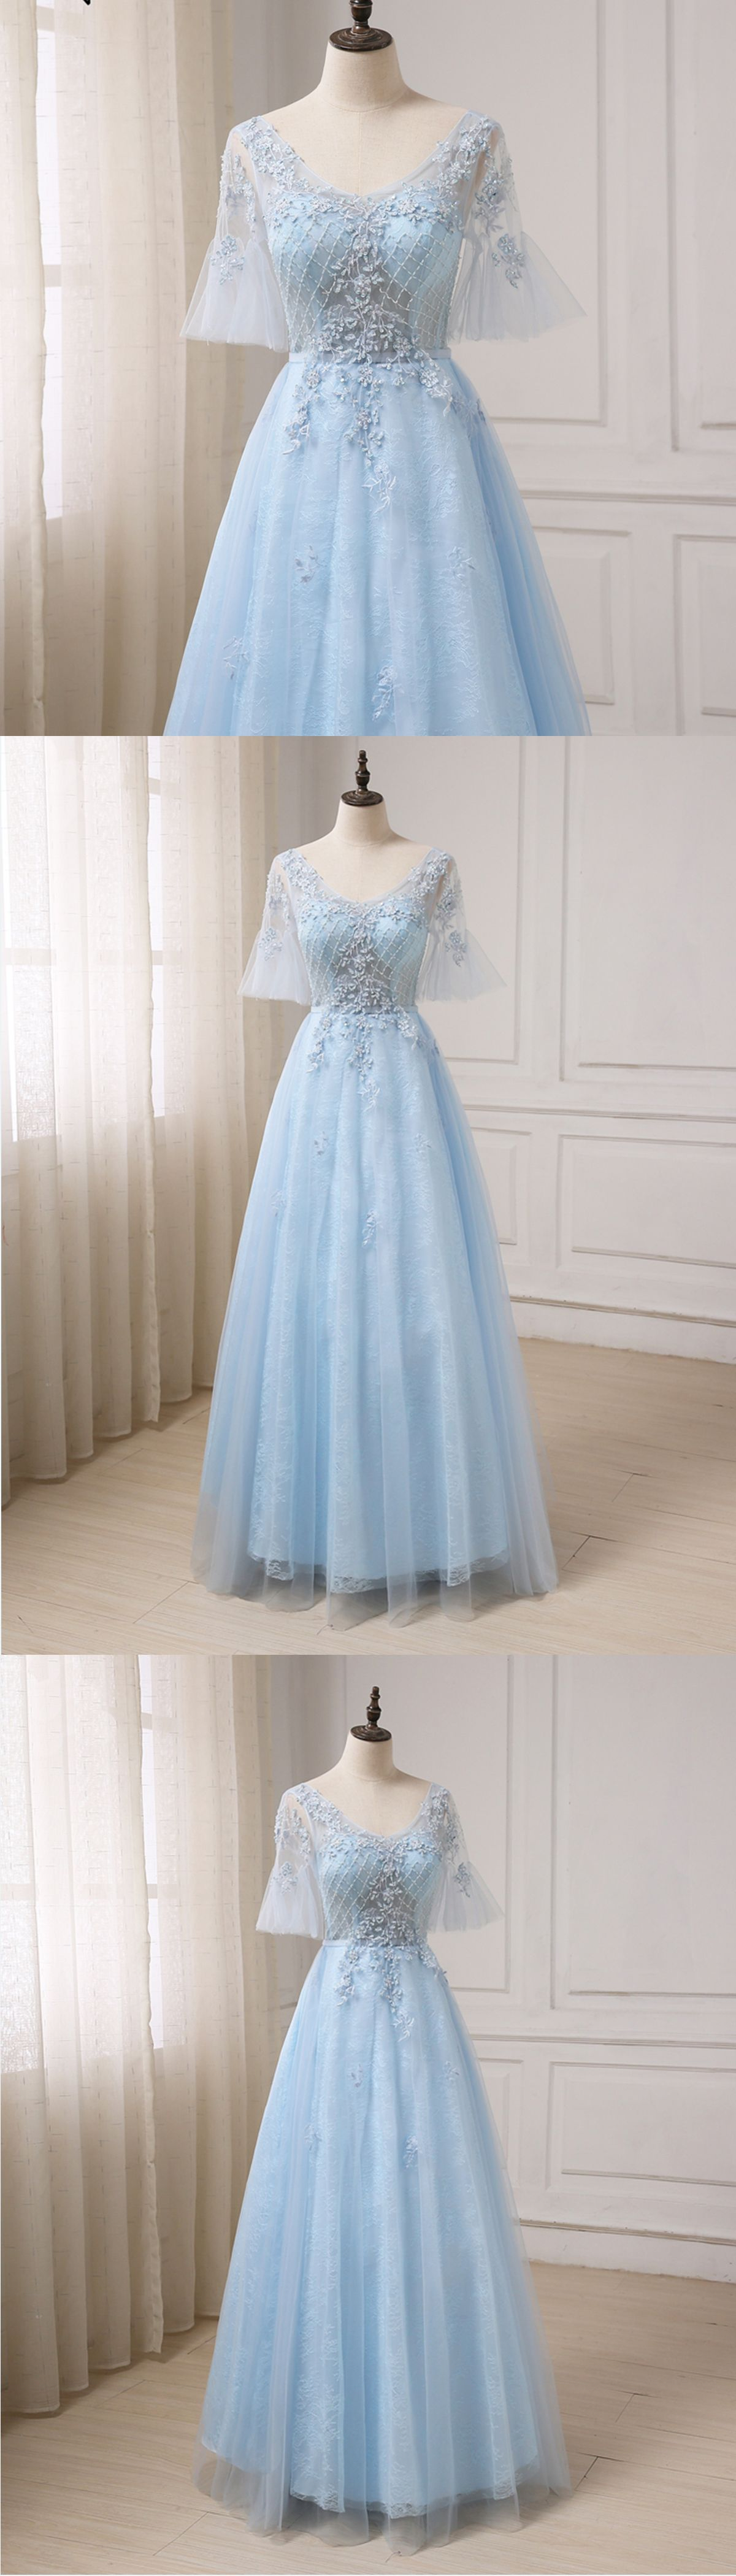 Blue tulle v neck see through long prom dress long evening dress